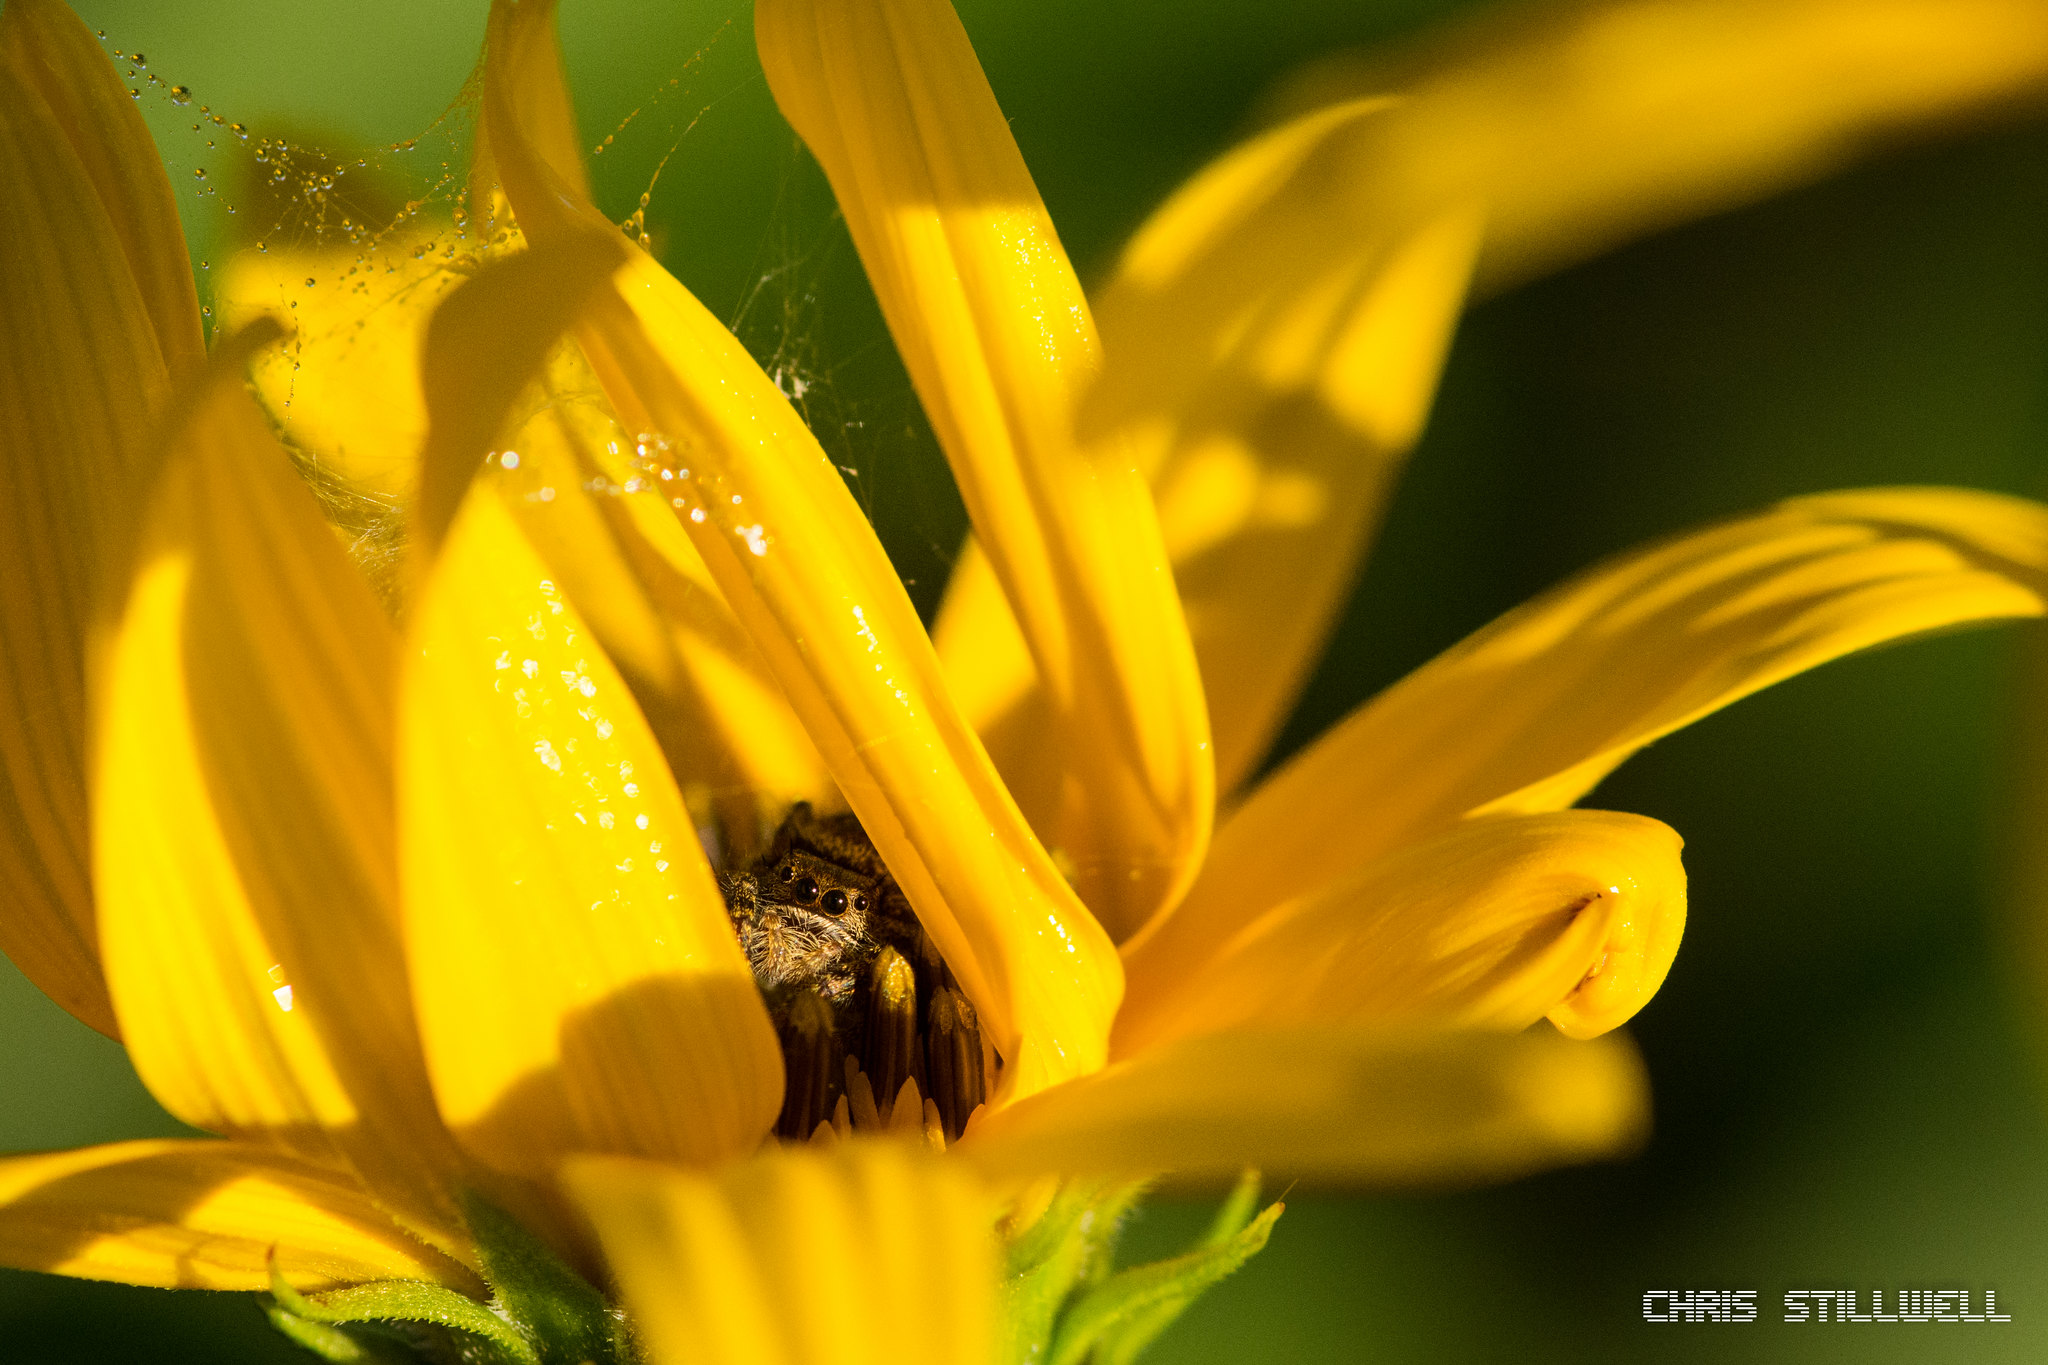 A shy jumping spider peeking between a sunflower's petals [OC][2048 x 1365]